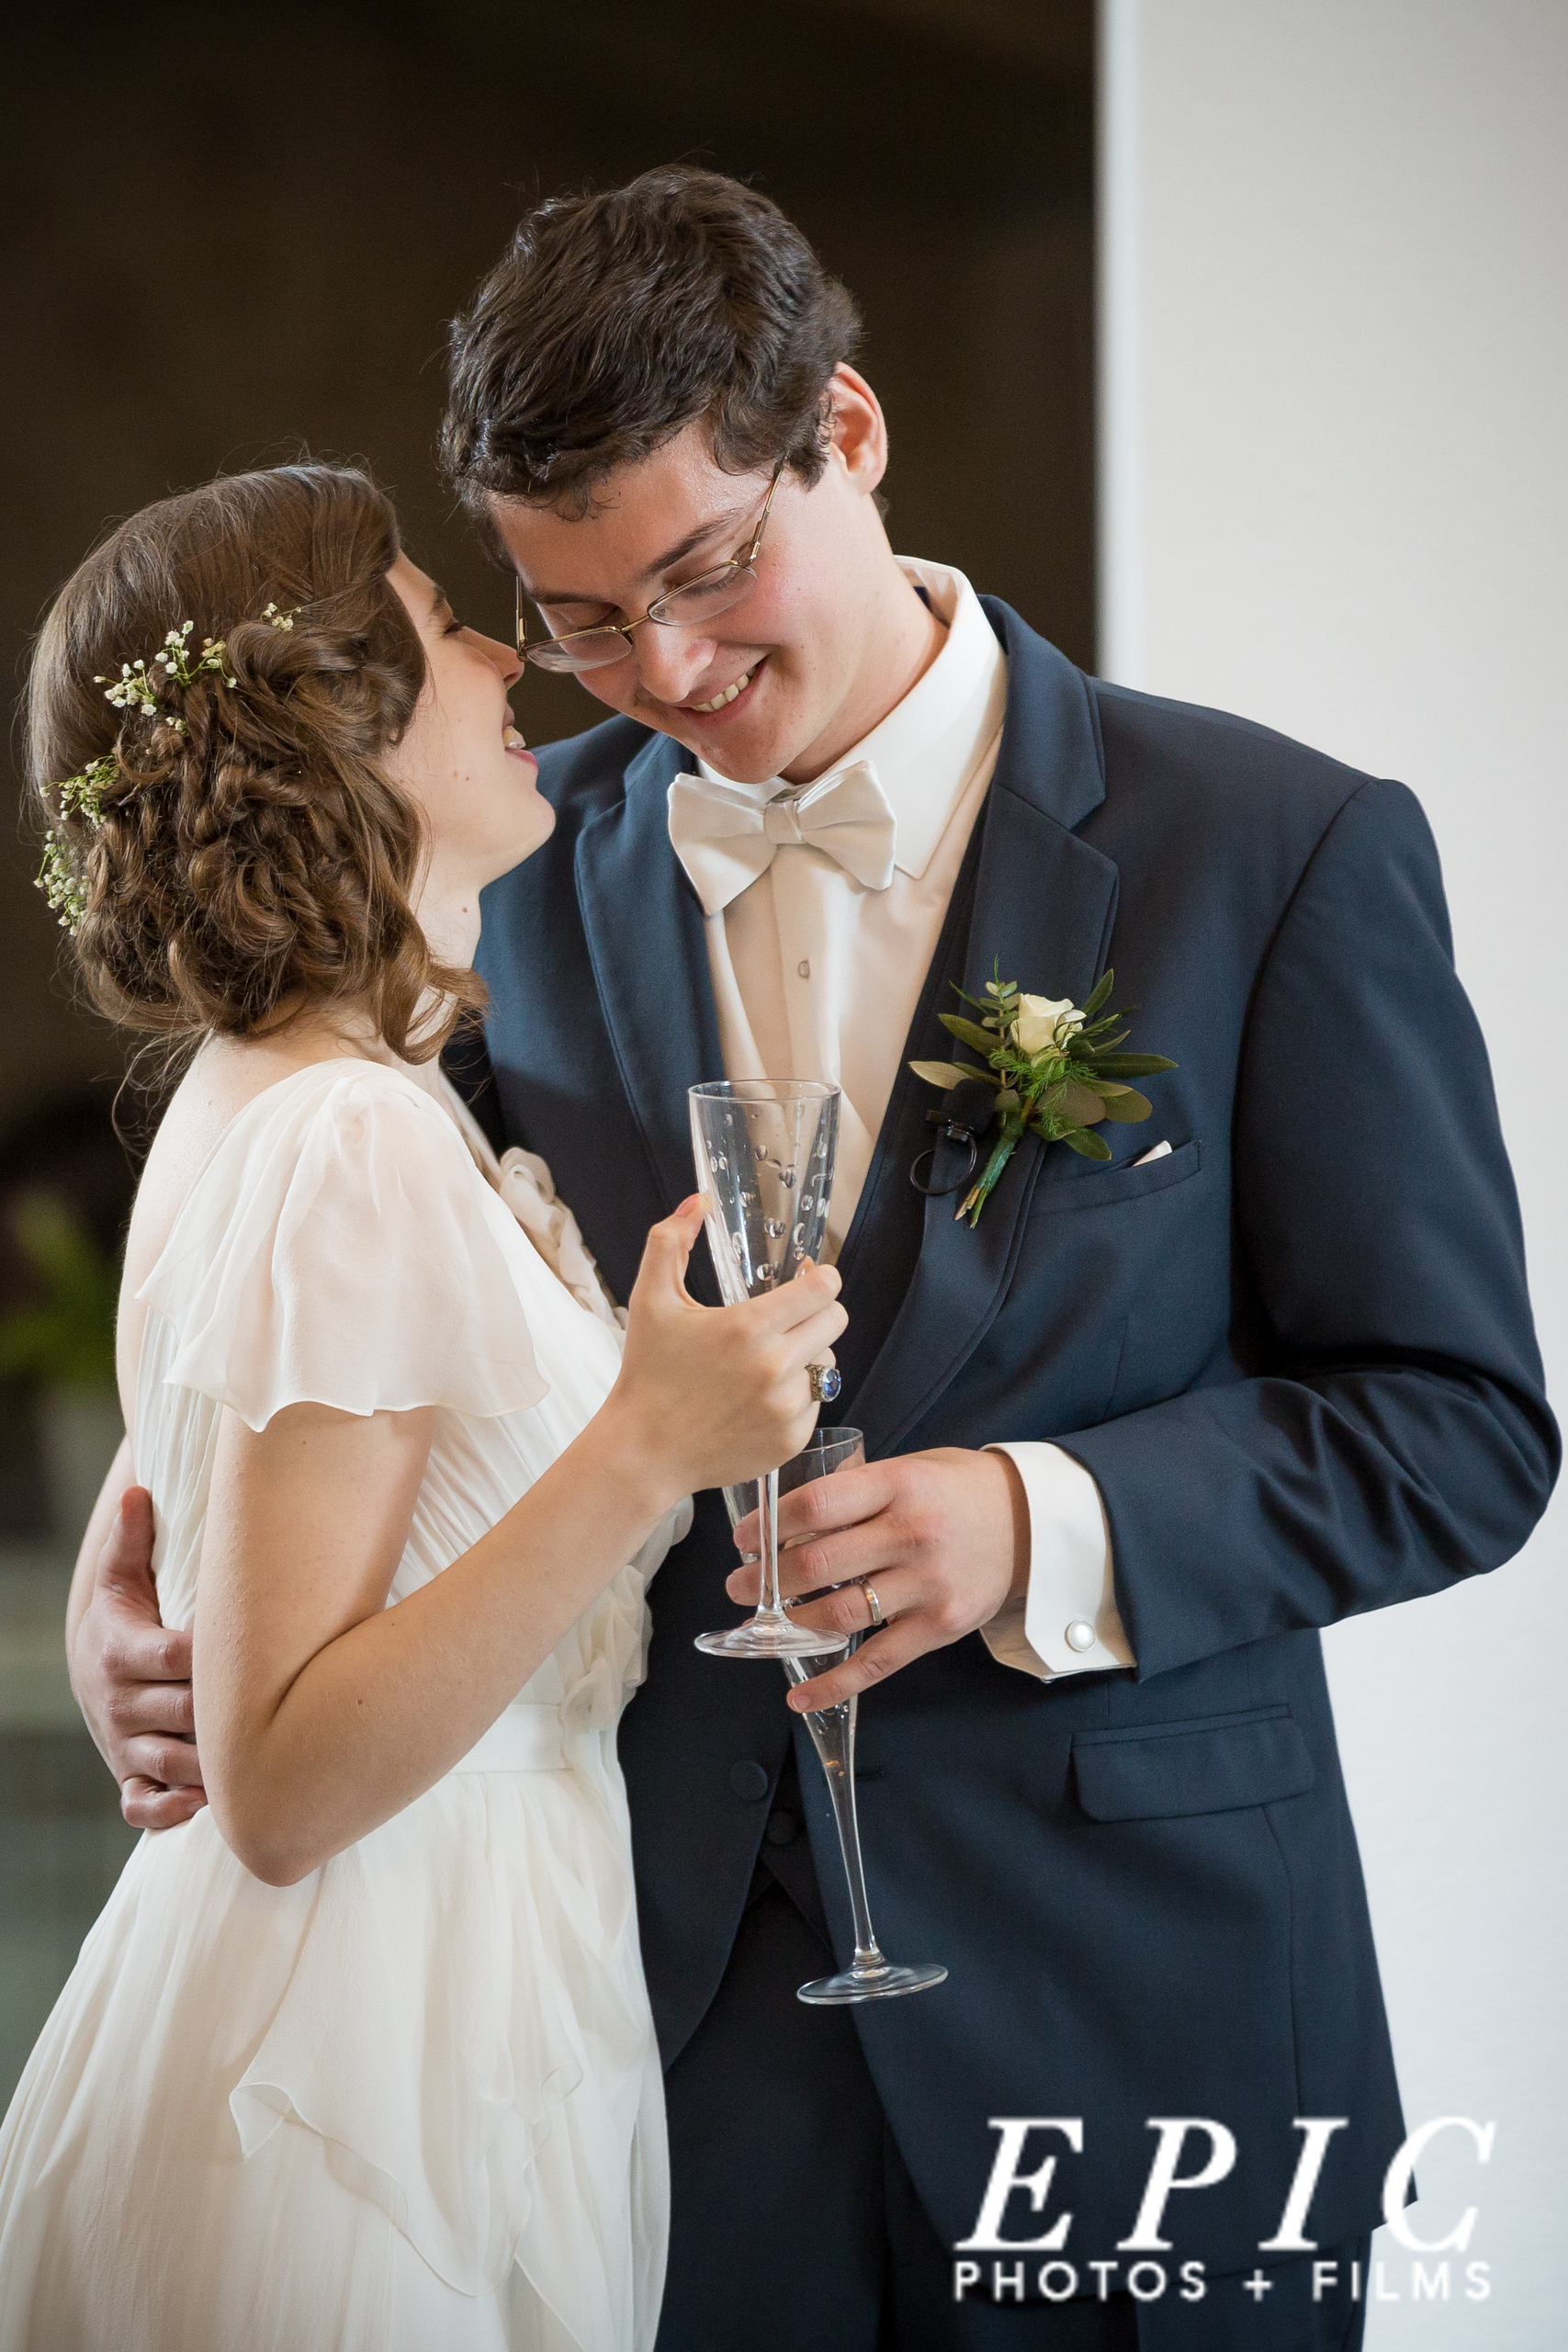 Bride whispering into her grooms ear as they toast champagne